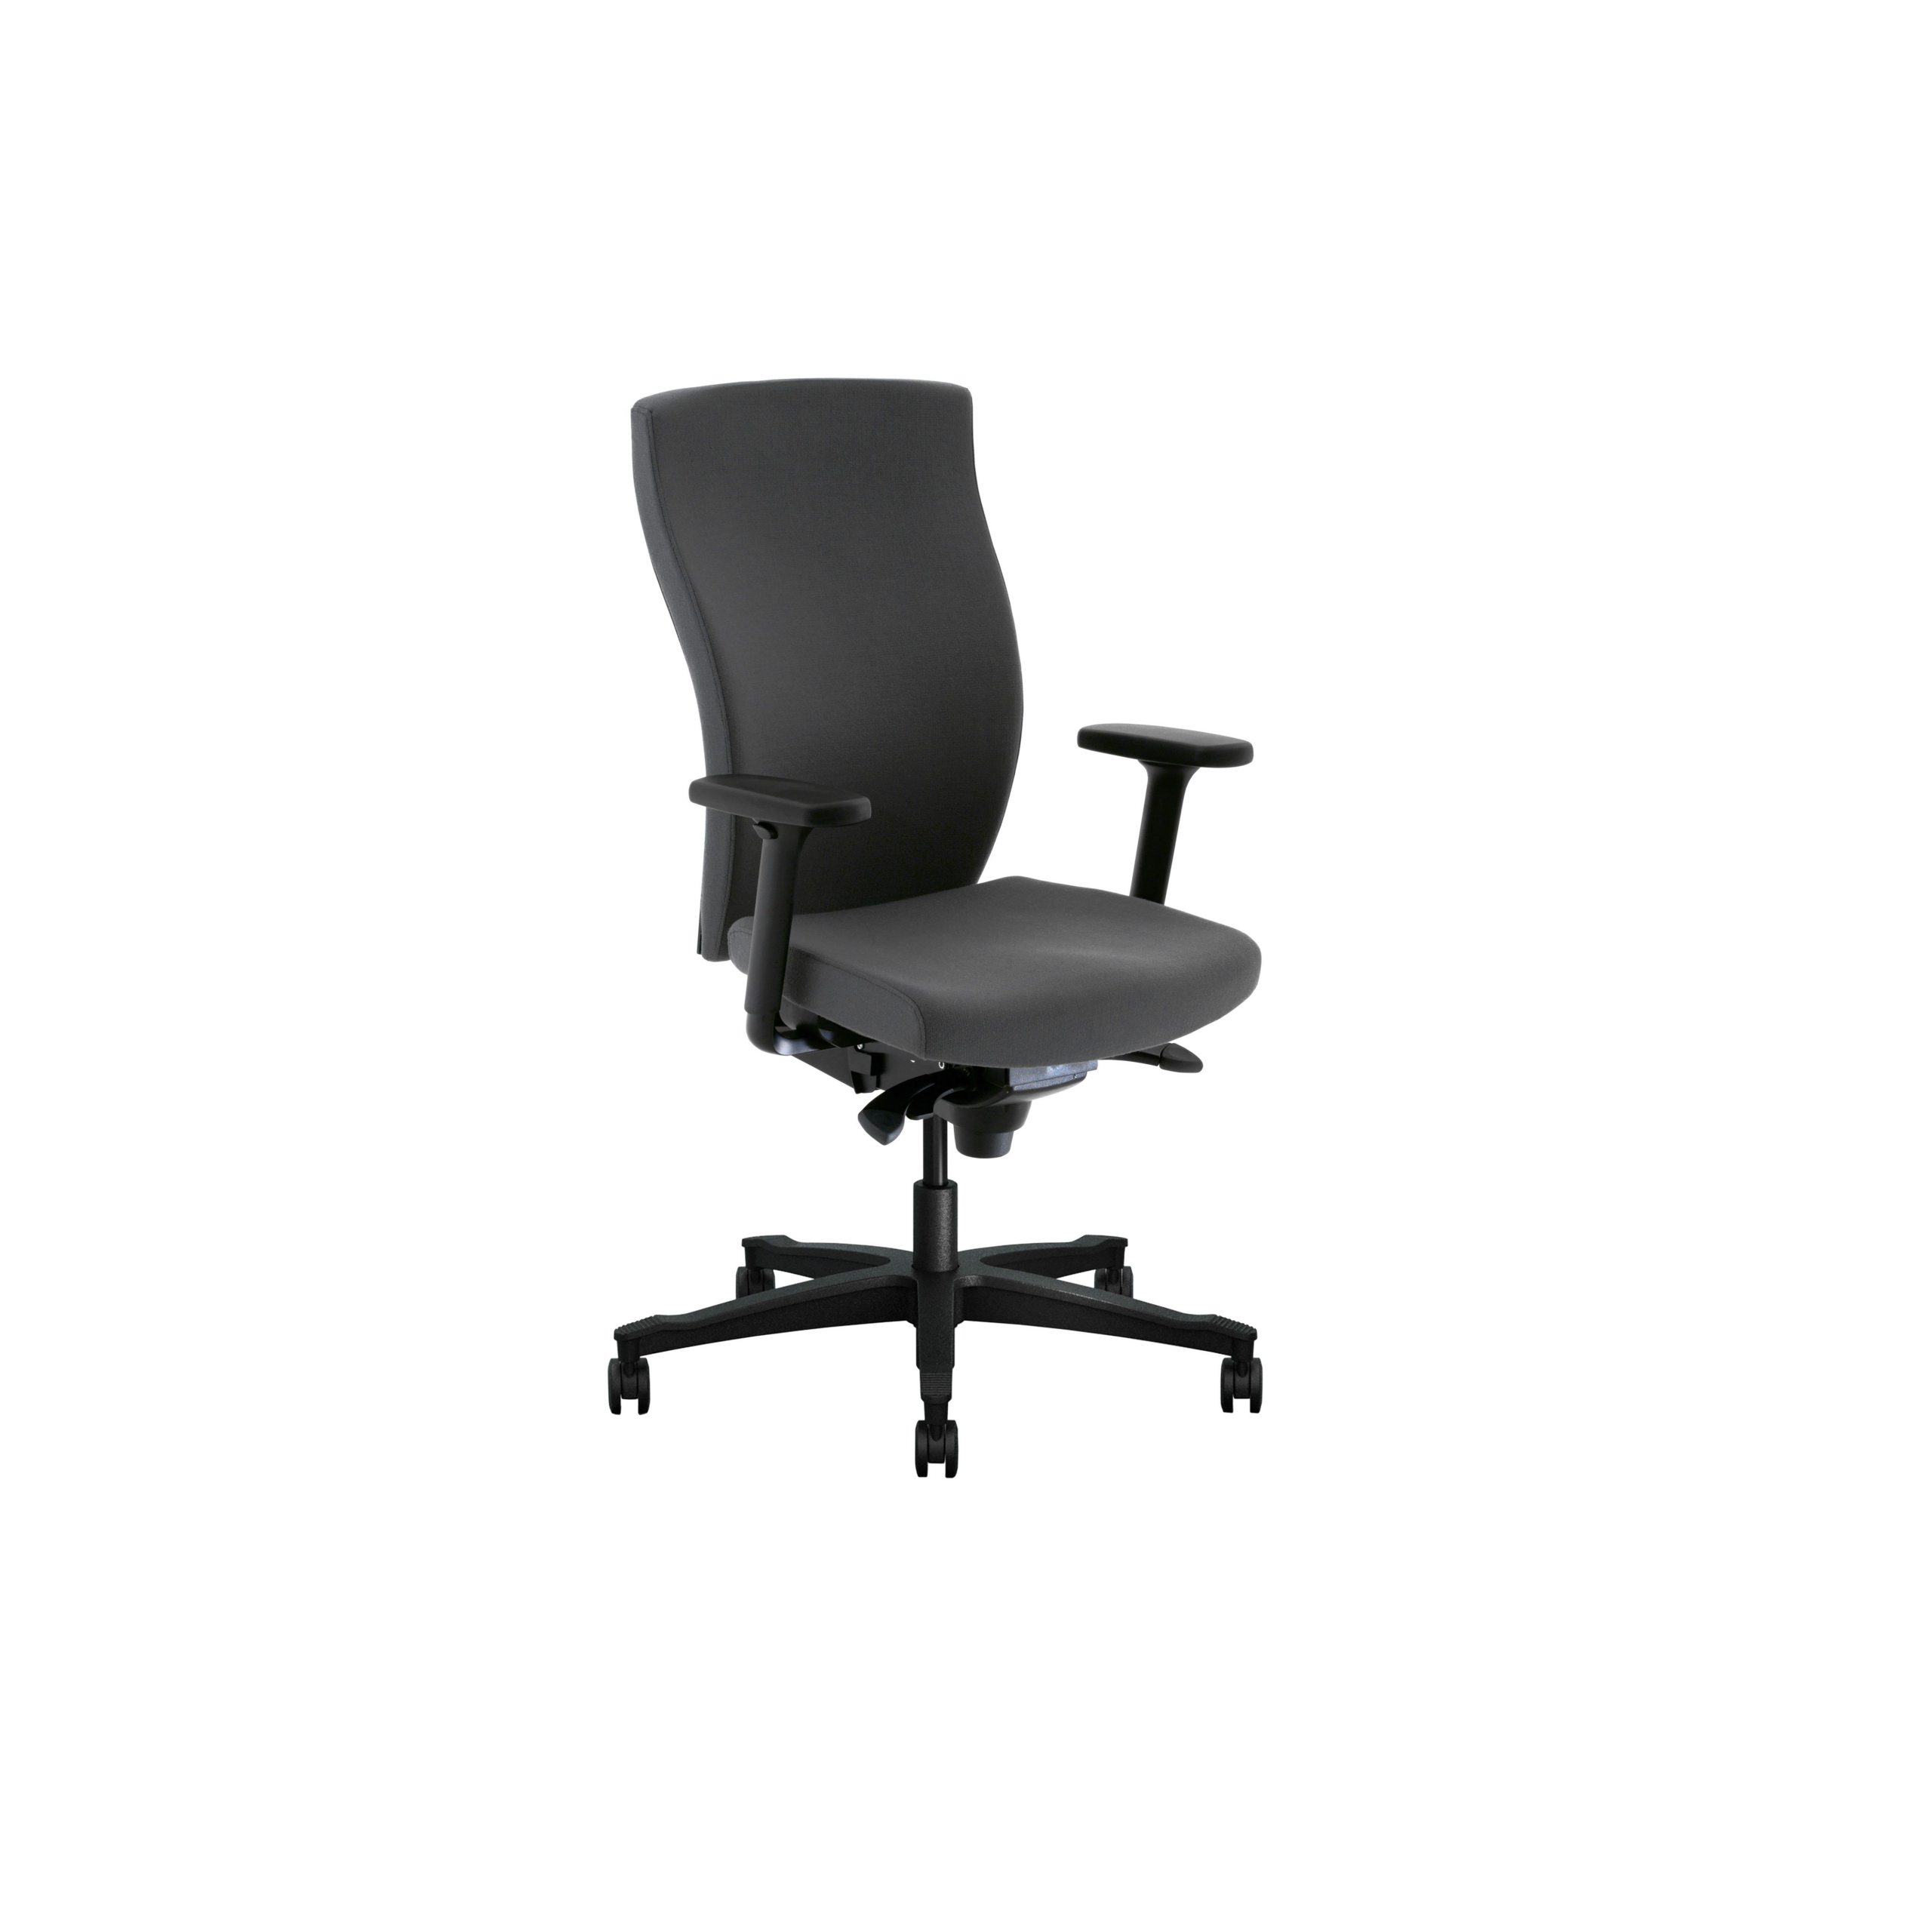 Splice Office chair with upholstered back